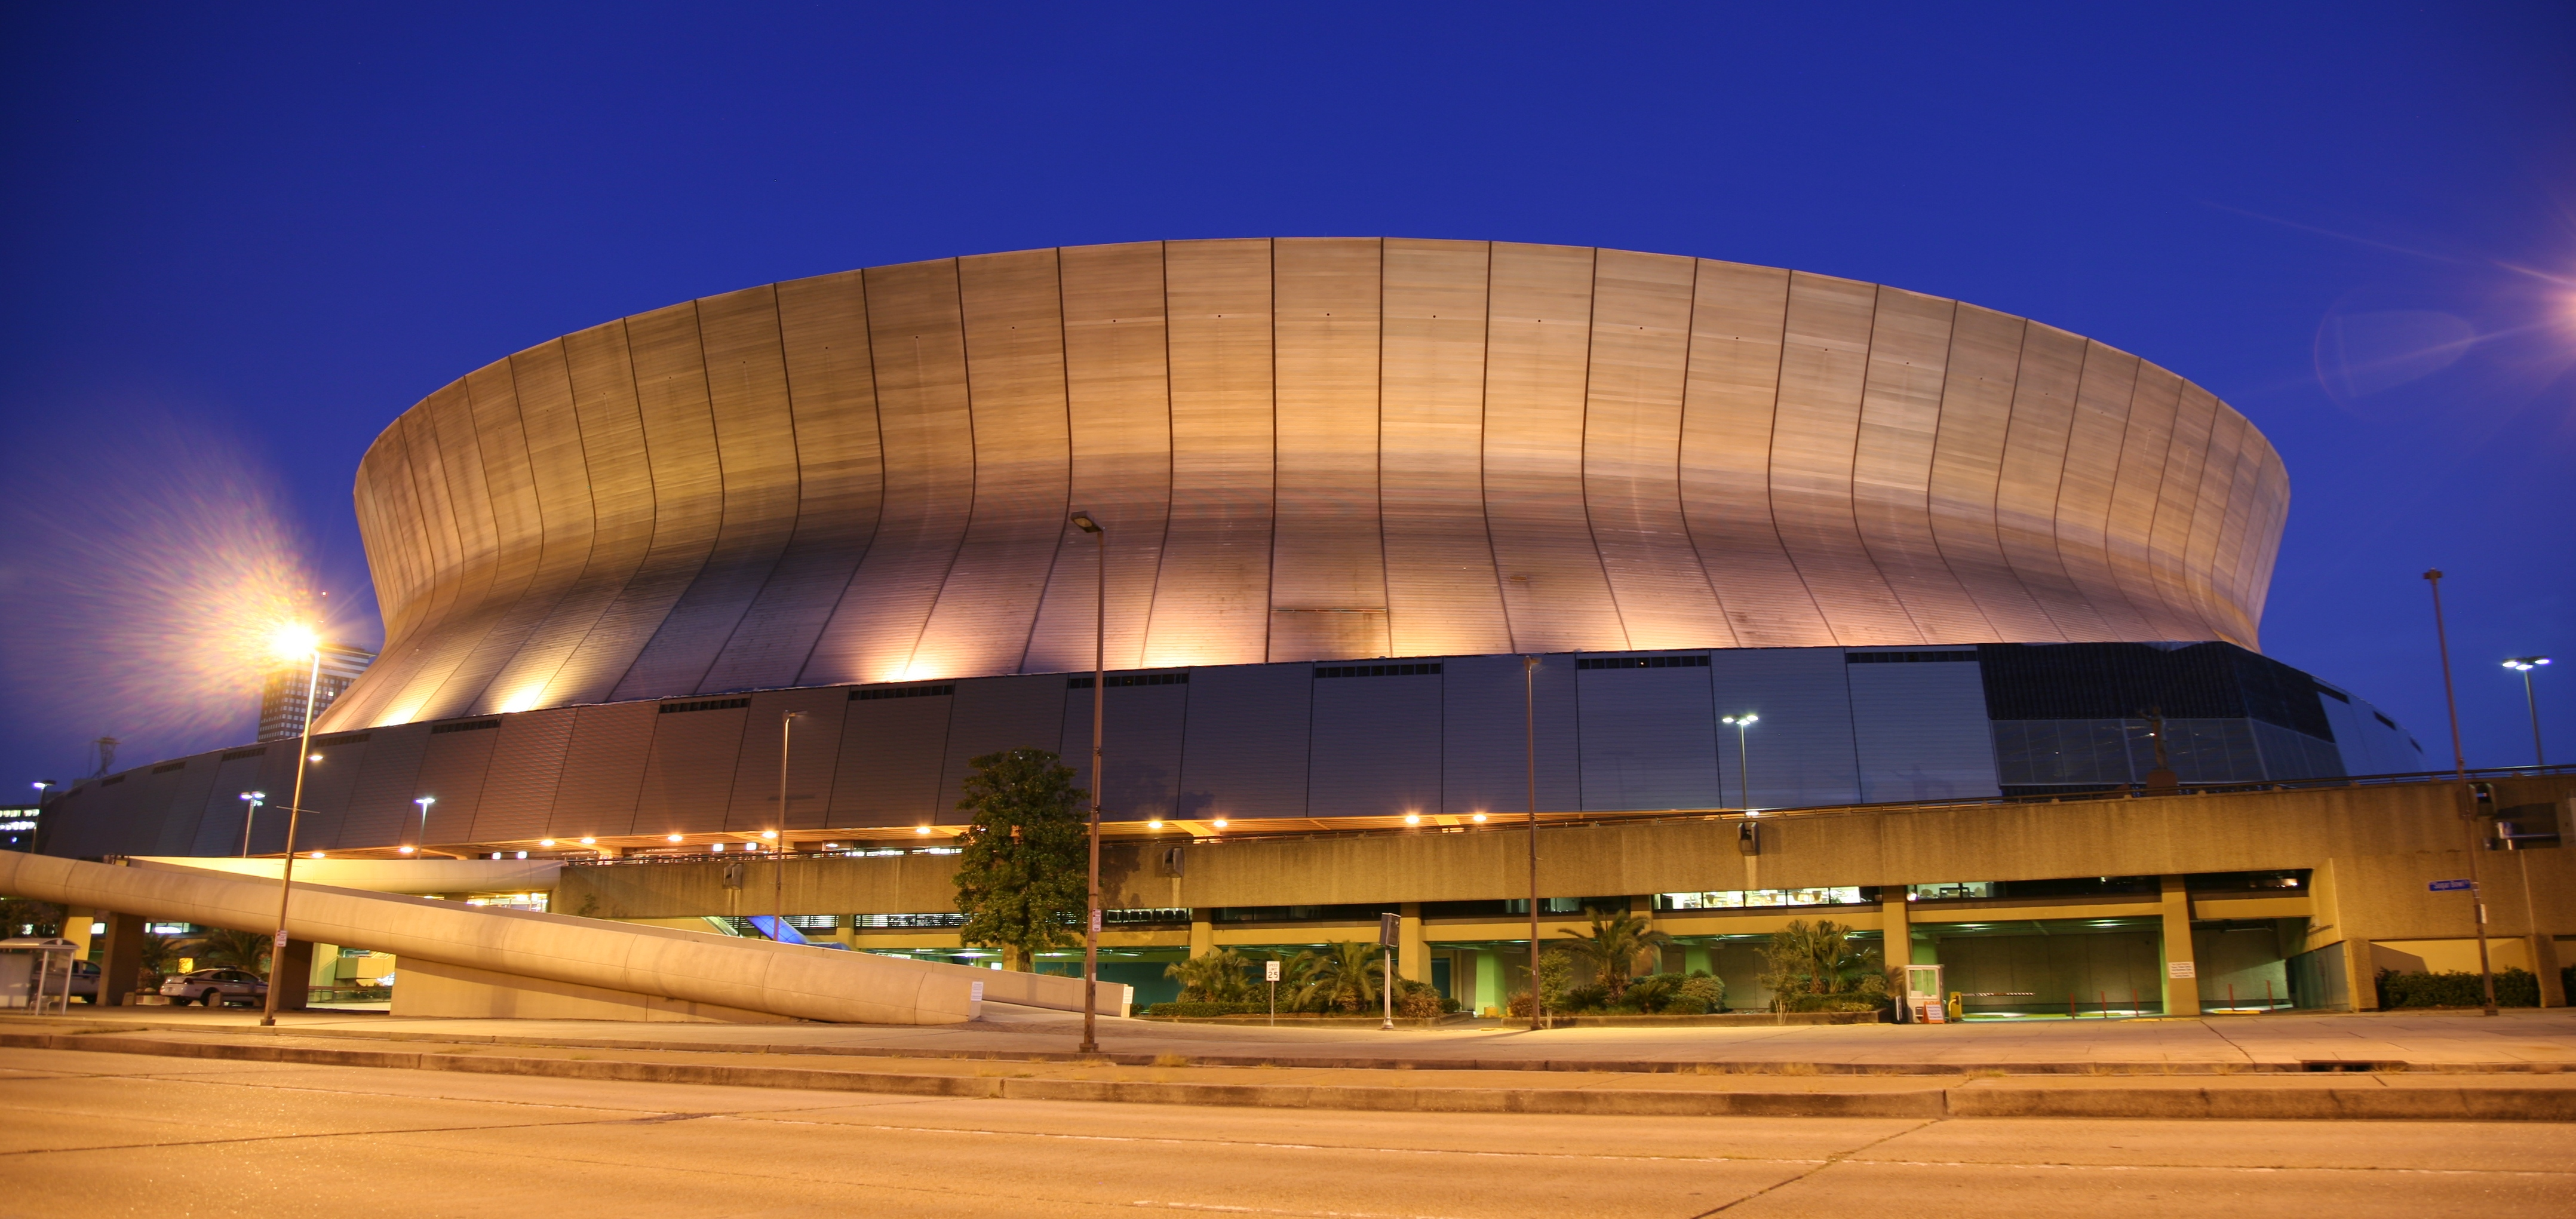 Louisiana superdome new orleans for Mercedes benz superdome new orleans la